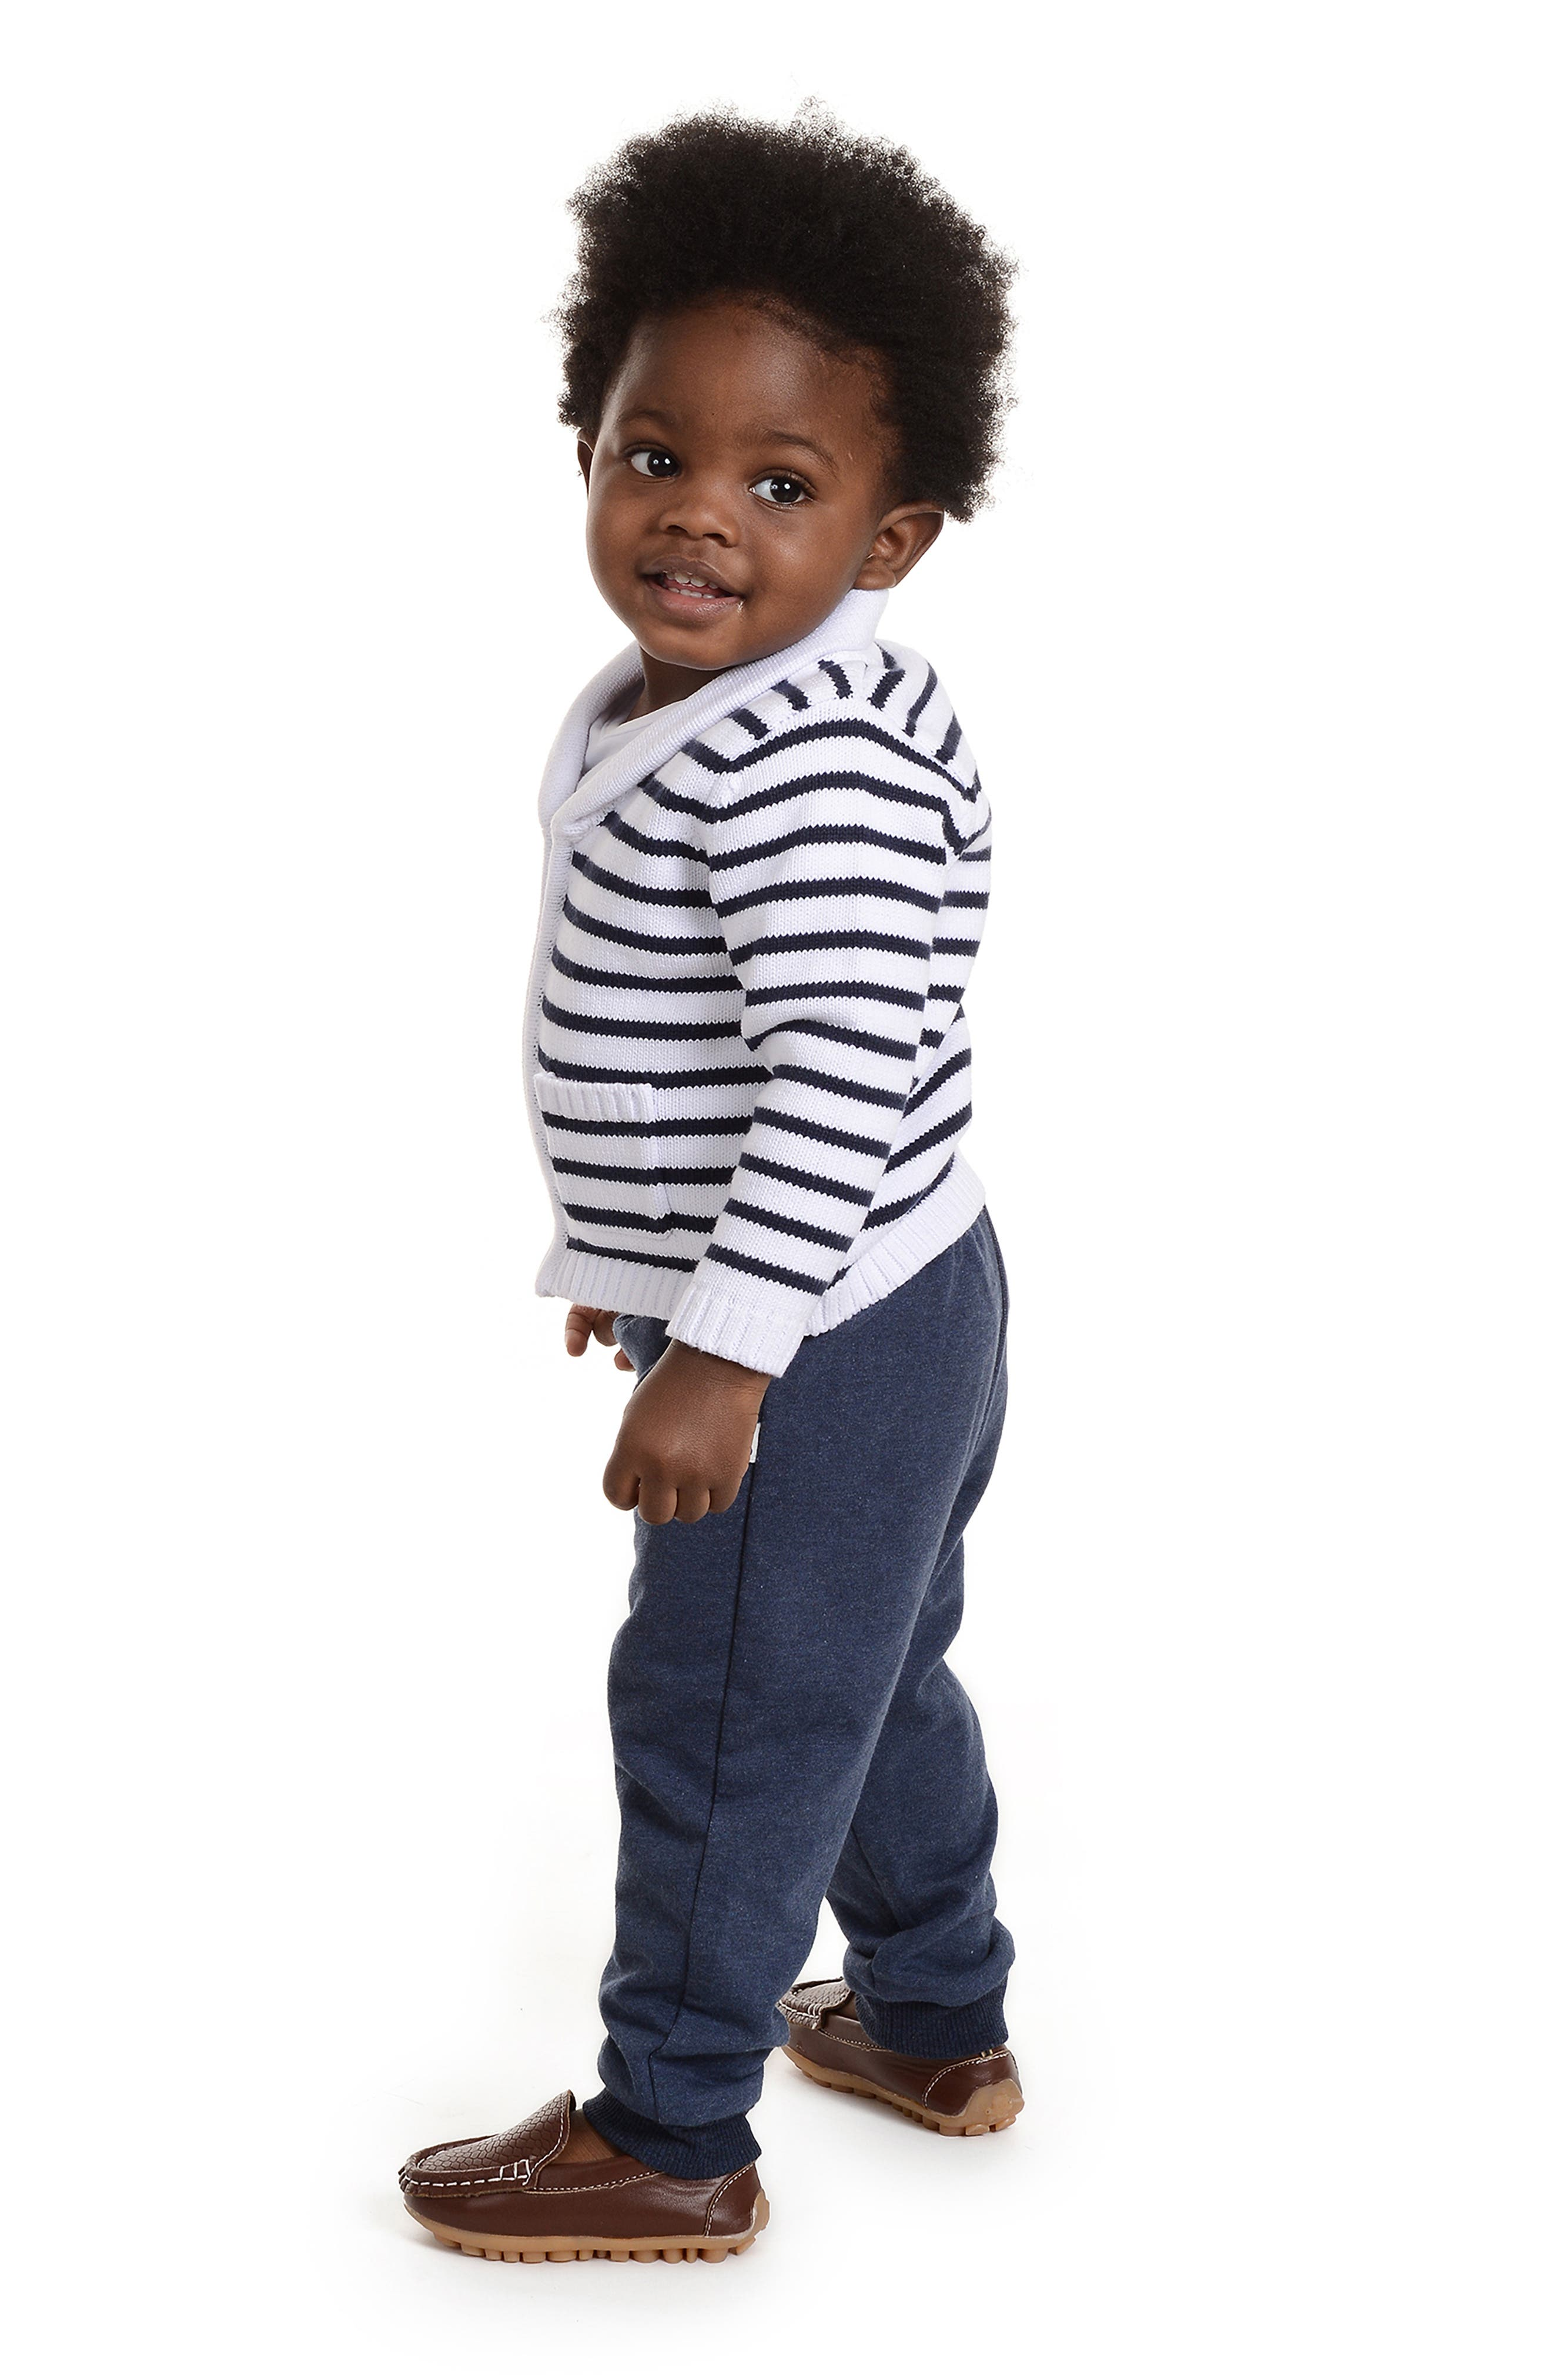 LITTLE BROTHER BY PIPPA & JULIE, Sweater, T-Shirt & Pants Set, Alternate thumbnail 4, color, NAVY/ WHITE